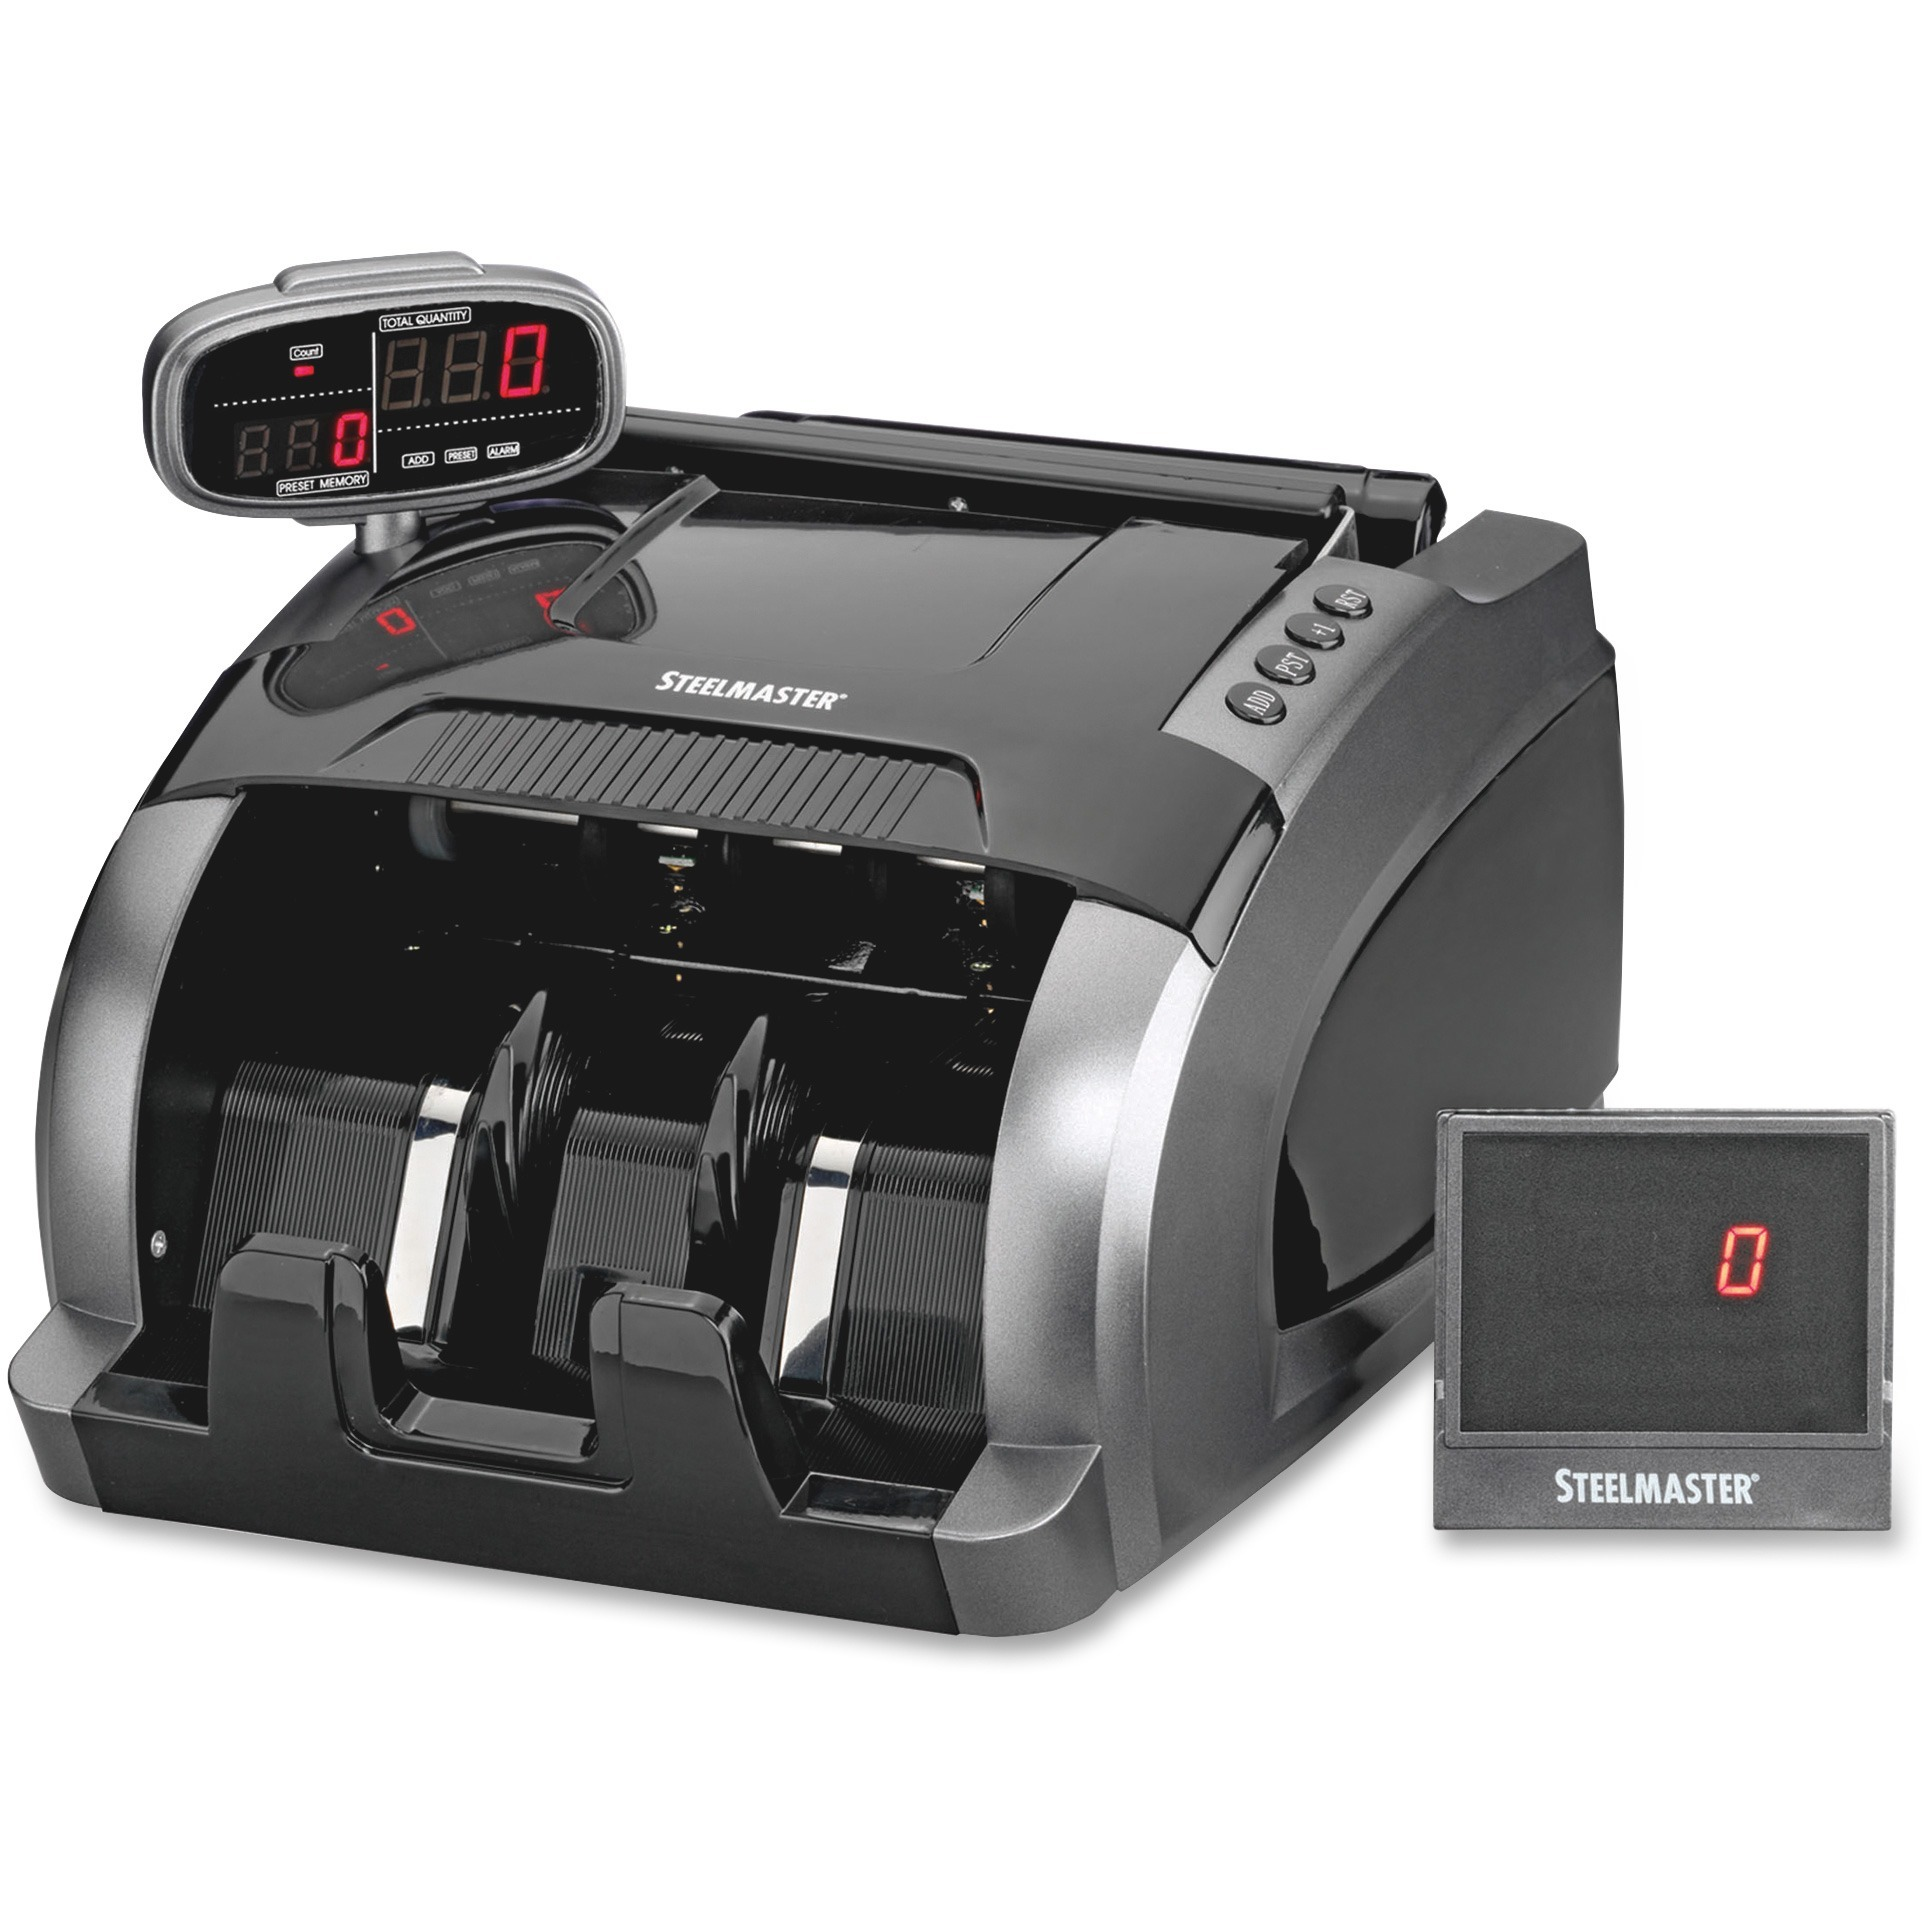 Steelmaster, MMF2004800C8, 4800 Currency Counter, 1 Each, Black